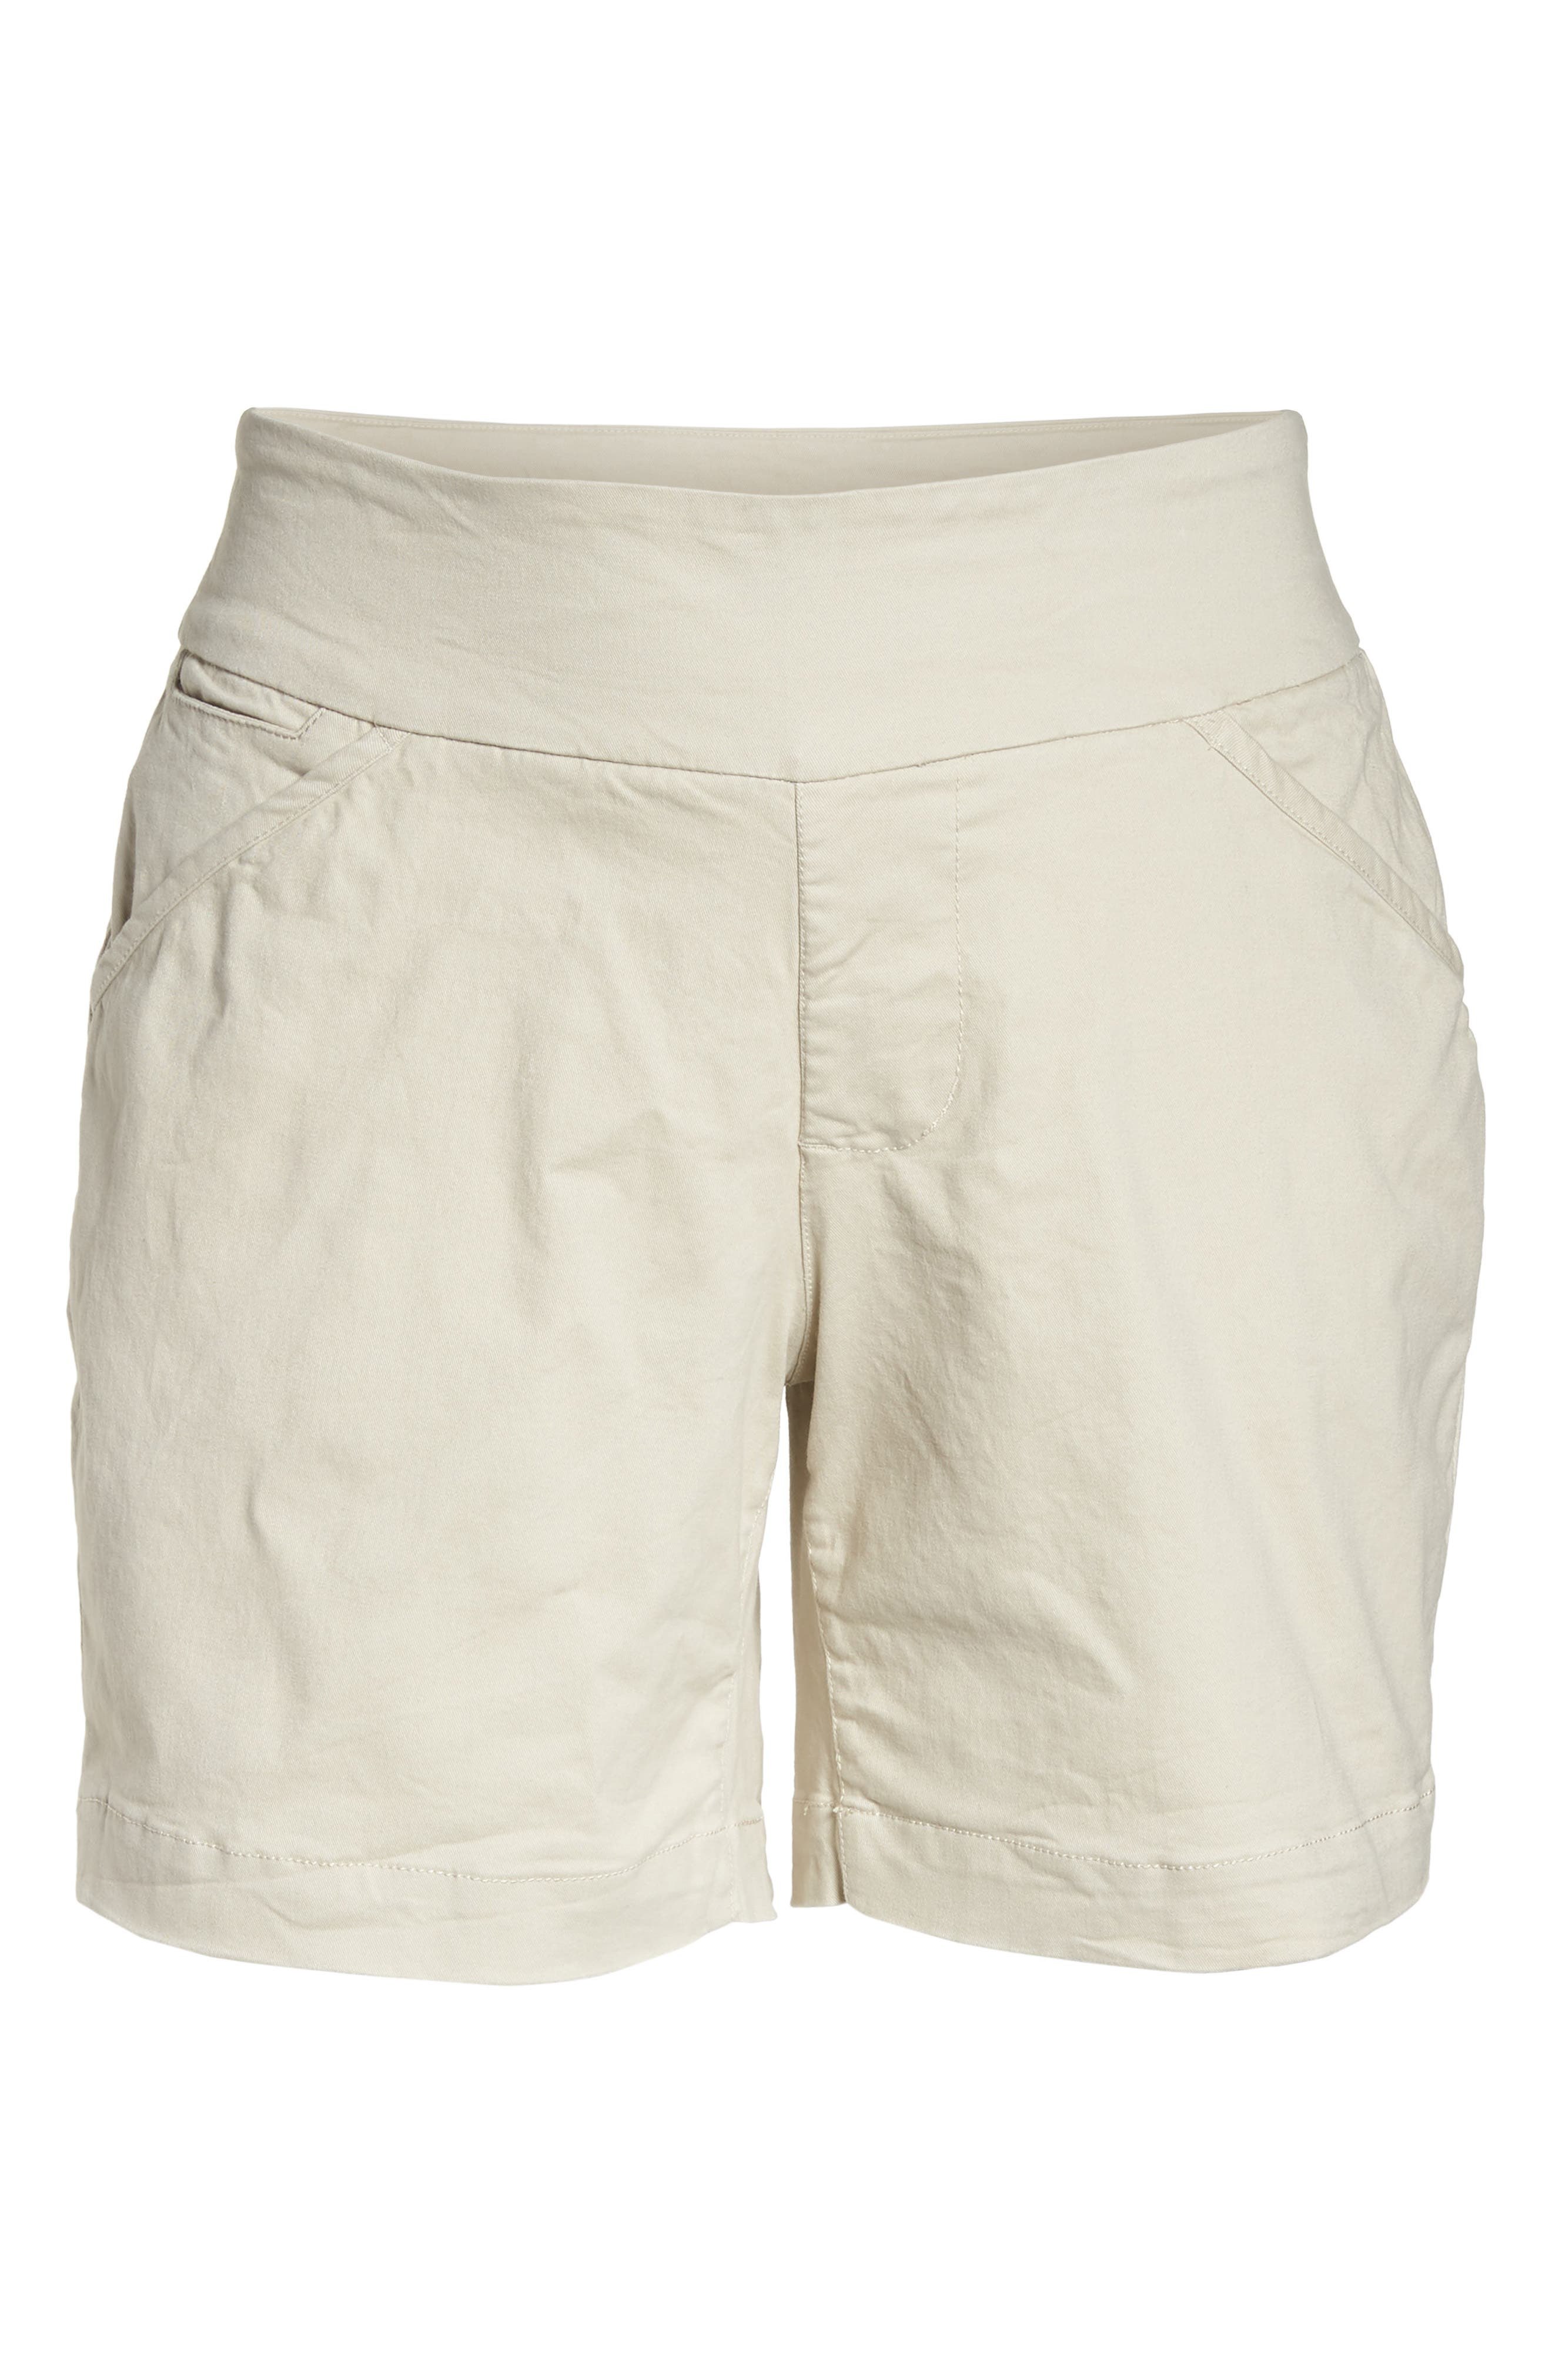 Ainsley Pull-On Shorts,                             Alternate thumbnail 6, color,                             Stone